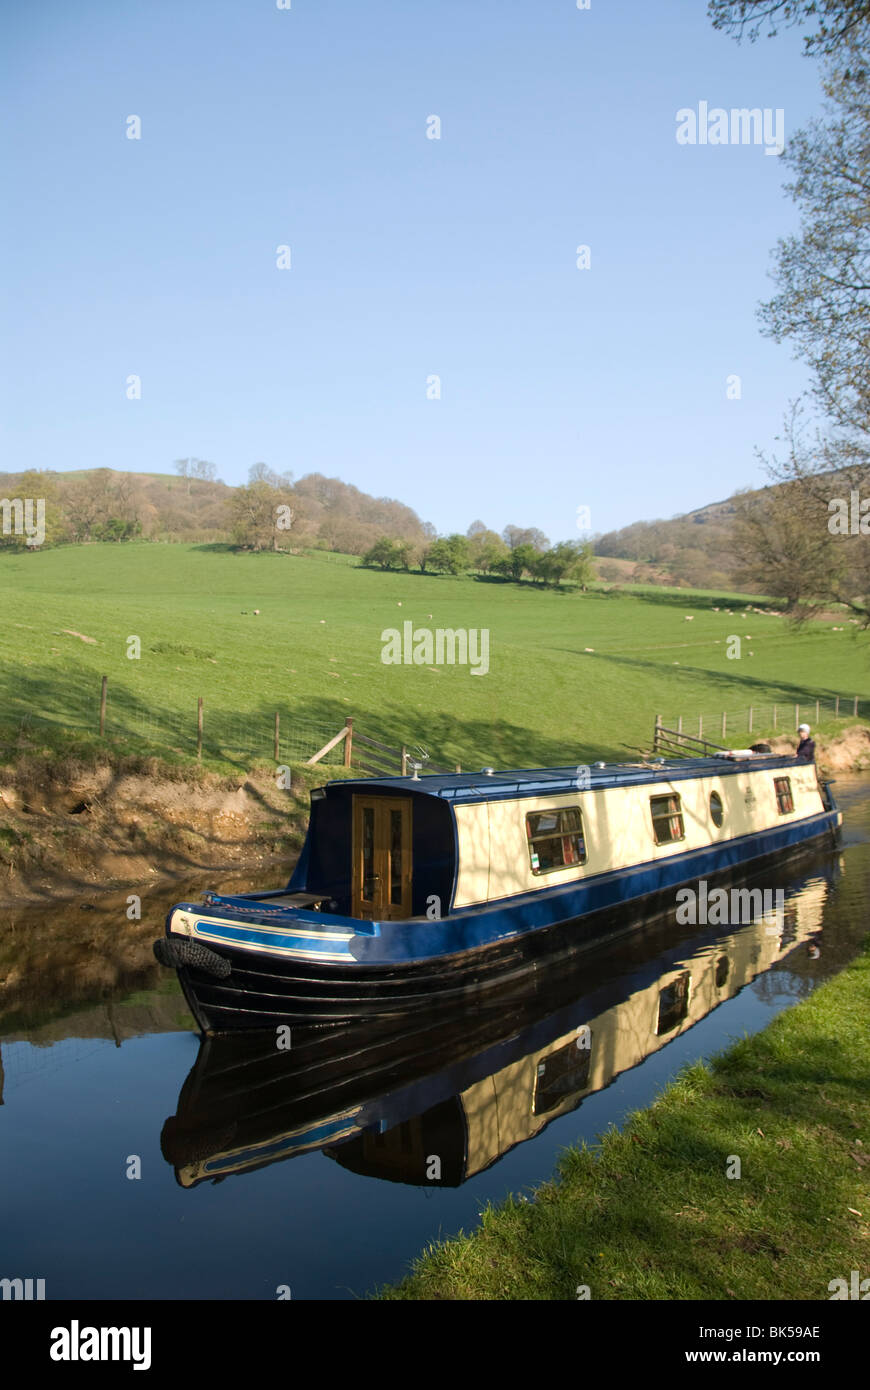 Narrow boat cruising the Llangollen Canal, Wales, United Kingdom, Europe - Stock Image